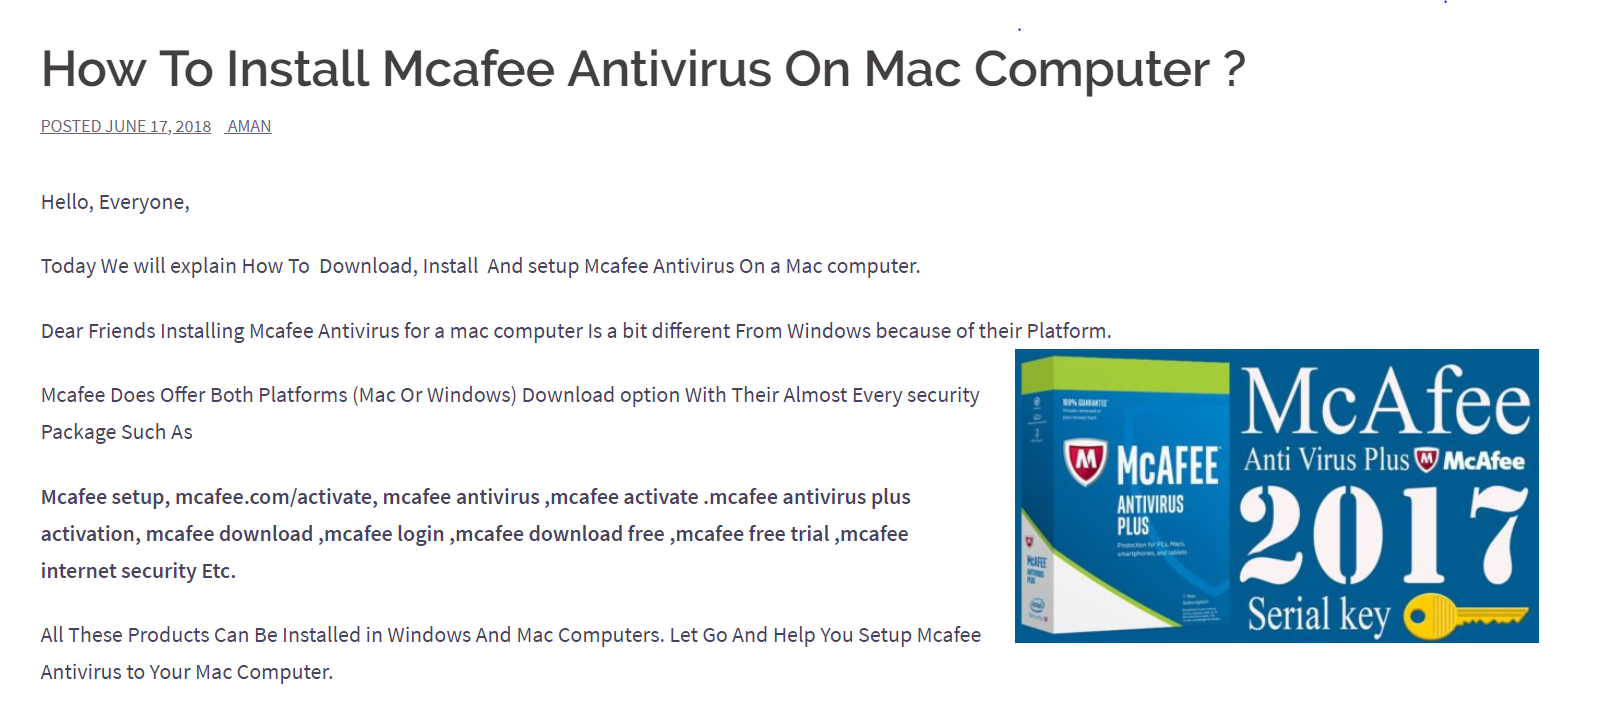 mcafee internet security latest version free download